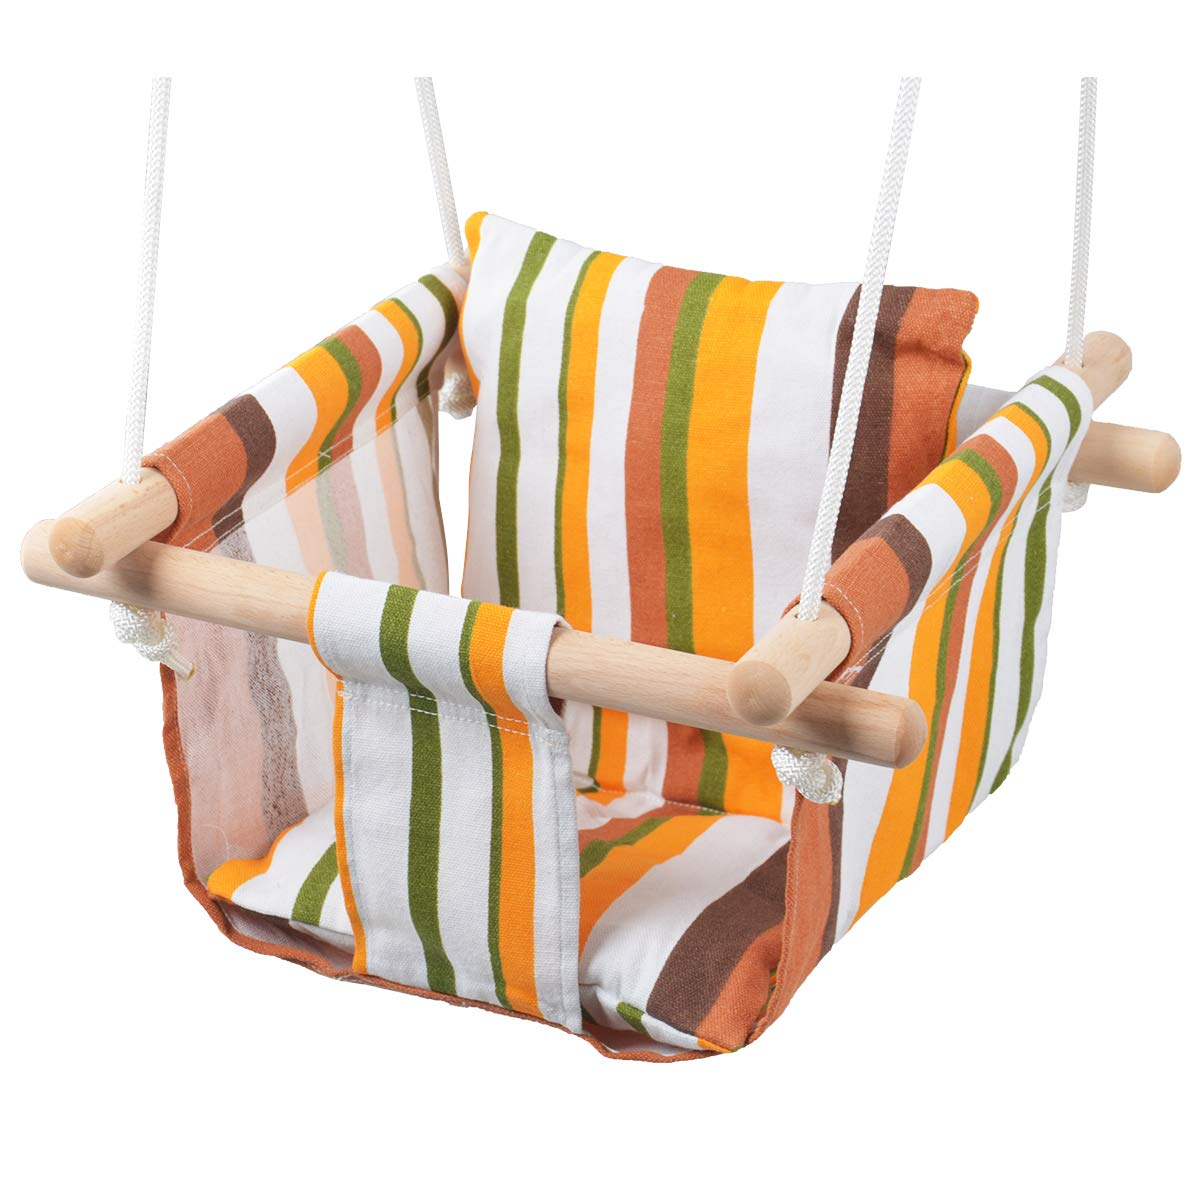 Installation Accessories Included Toddler Baby Hanging Swing Seat Secure Canvas Hammock Chair White//Yellow//Green Stripes